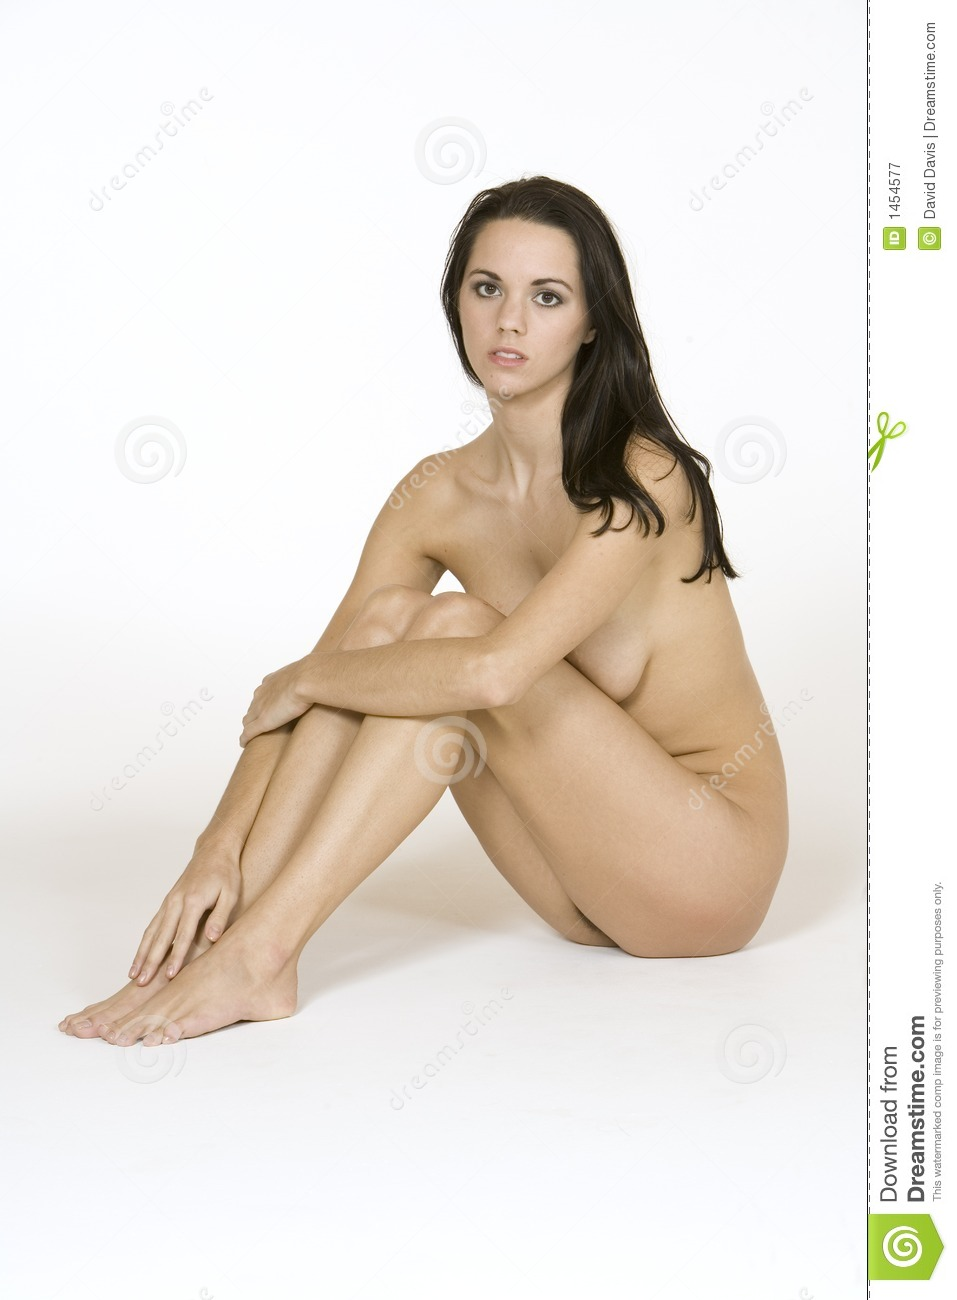 Join told Full figure nude study recommend